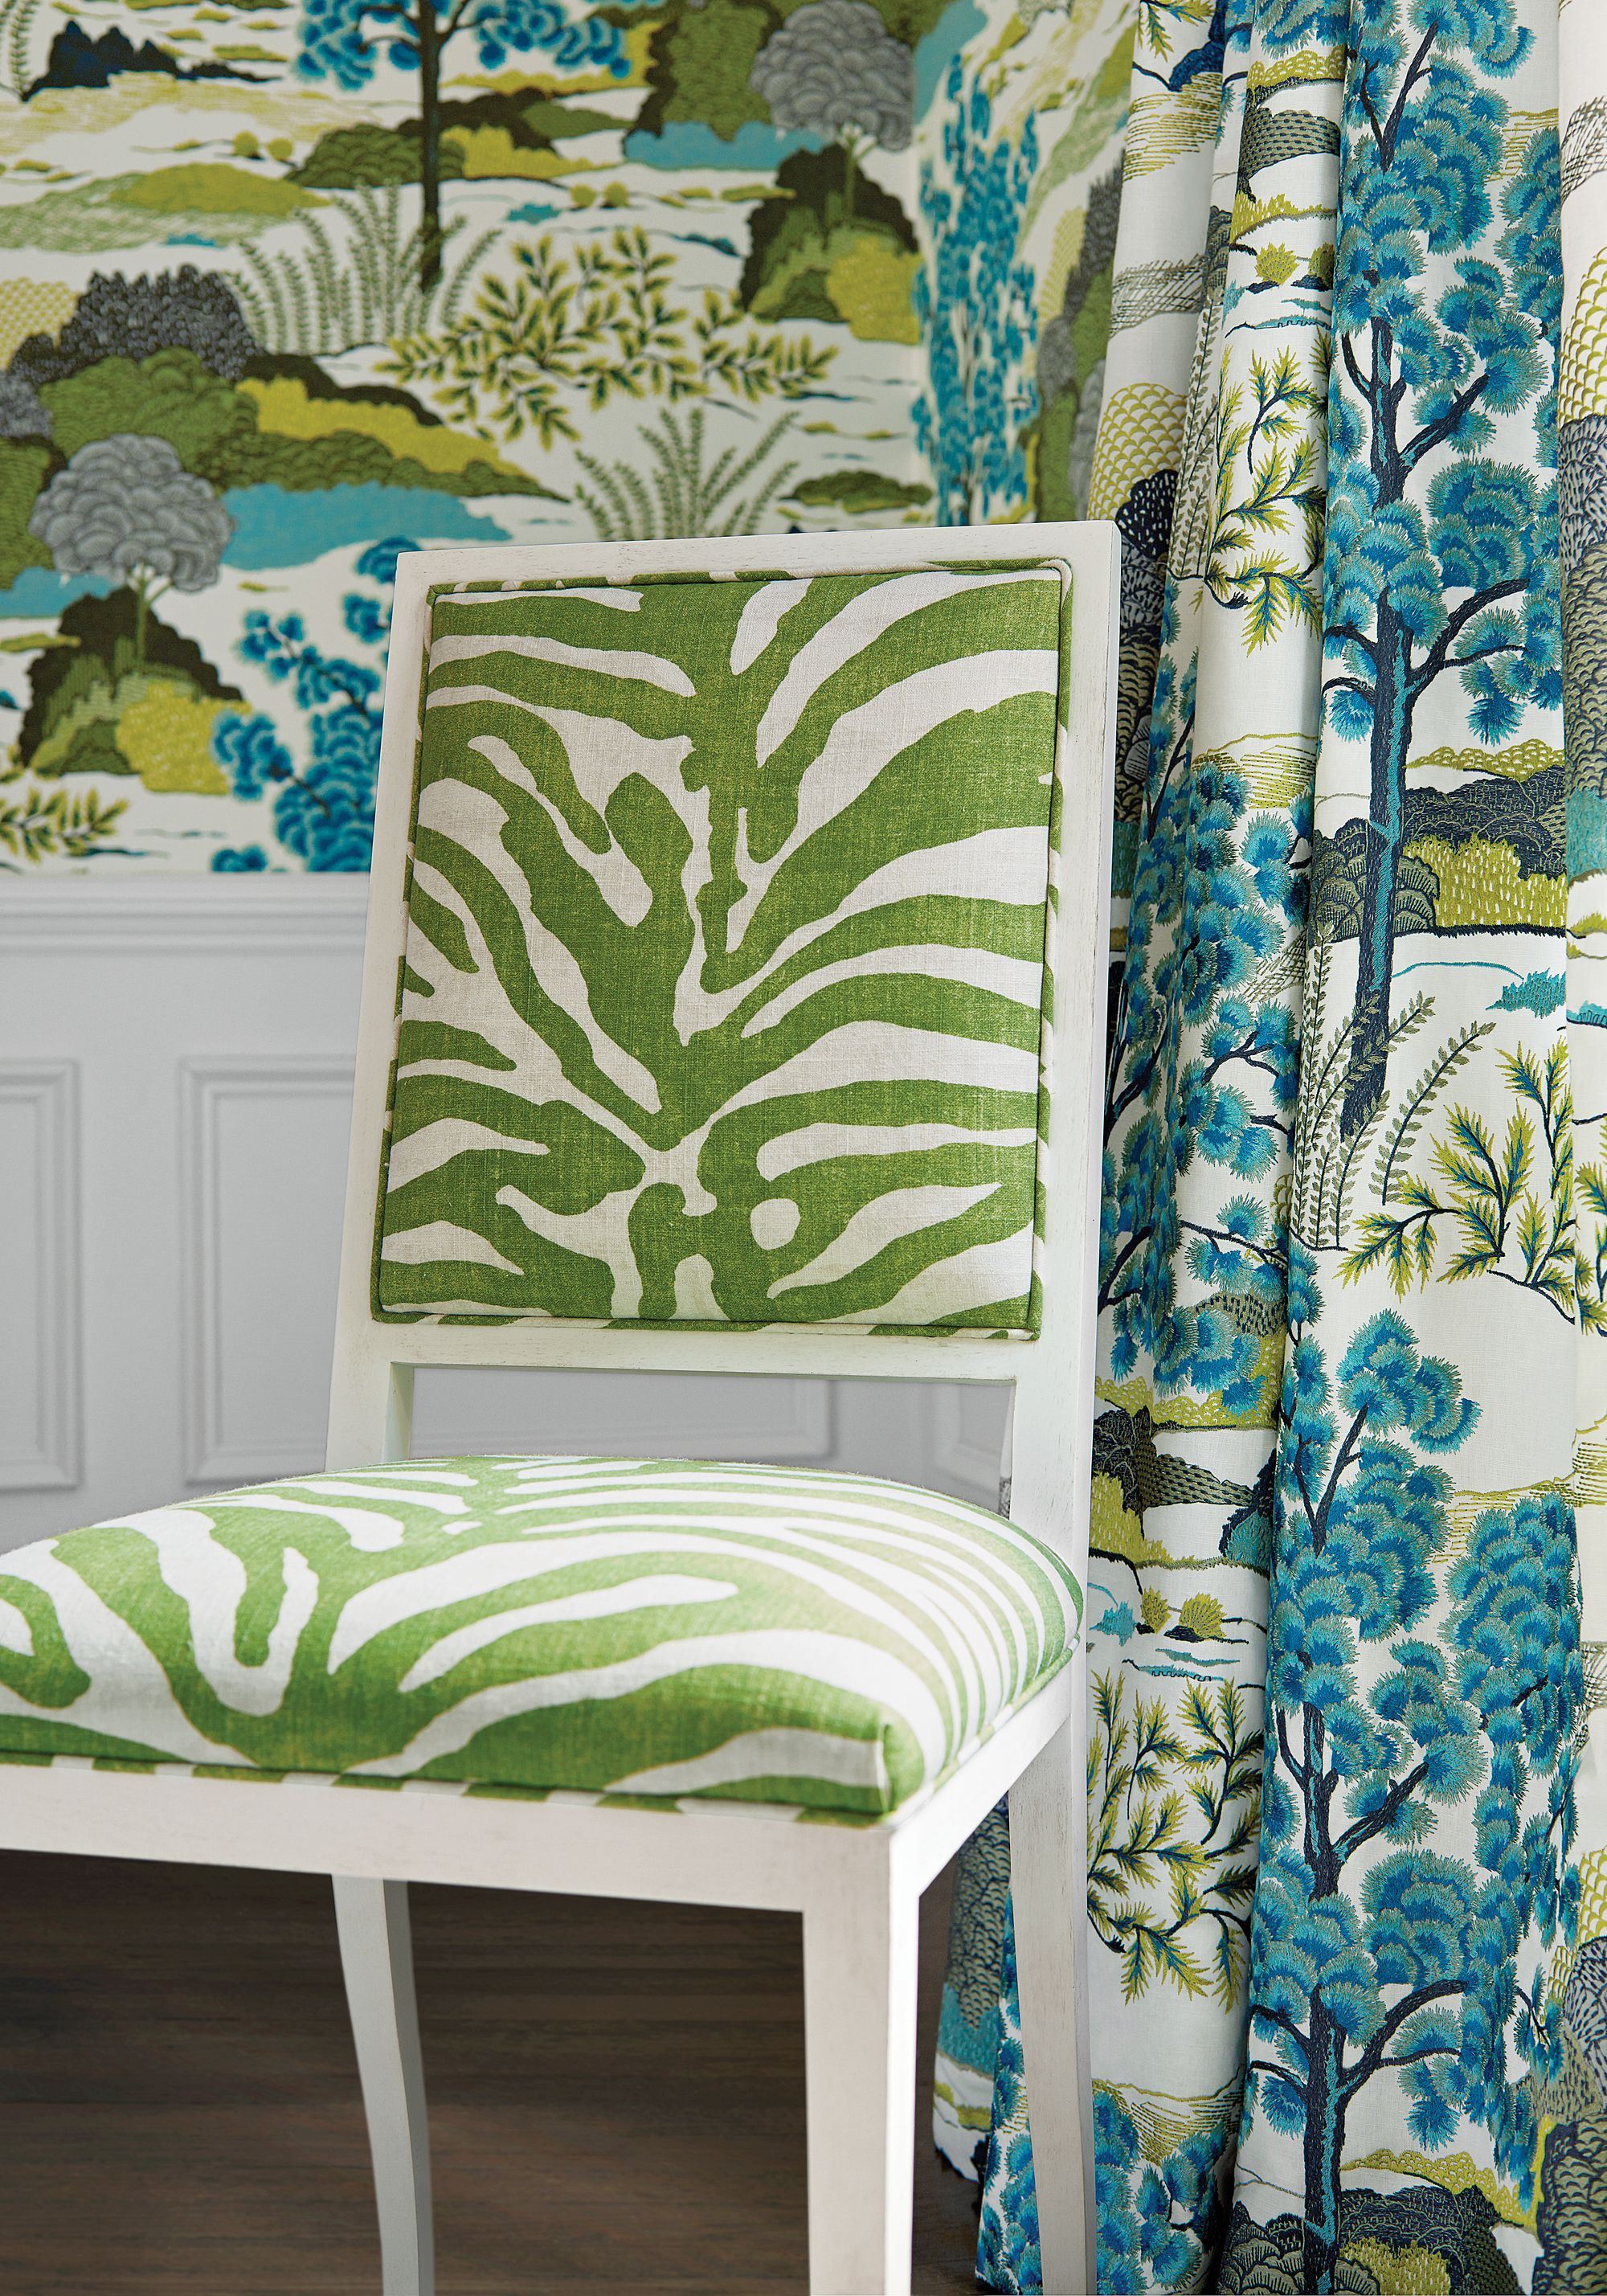 Lauderdale Chair in Serengeti printed fabric in Green from